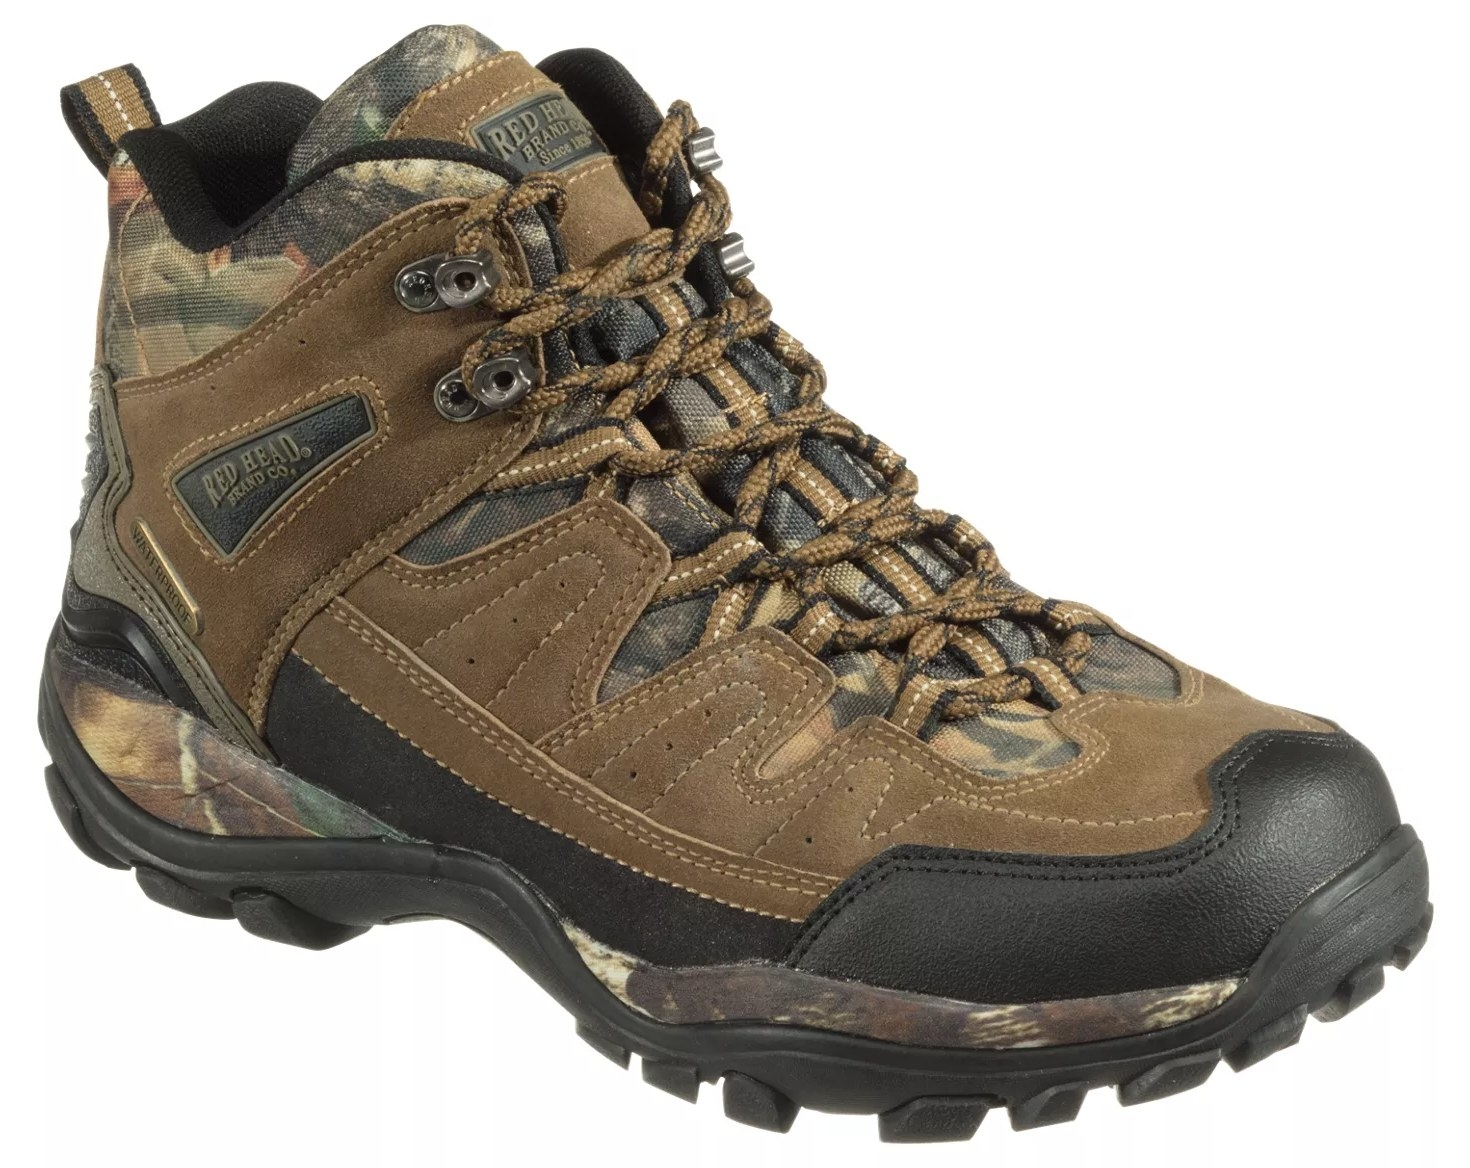 a brown, black, and camo hiking boot